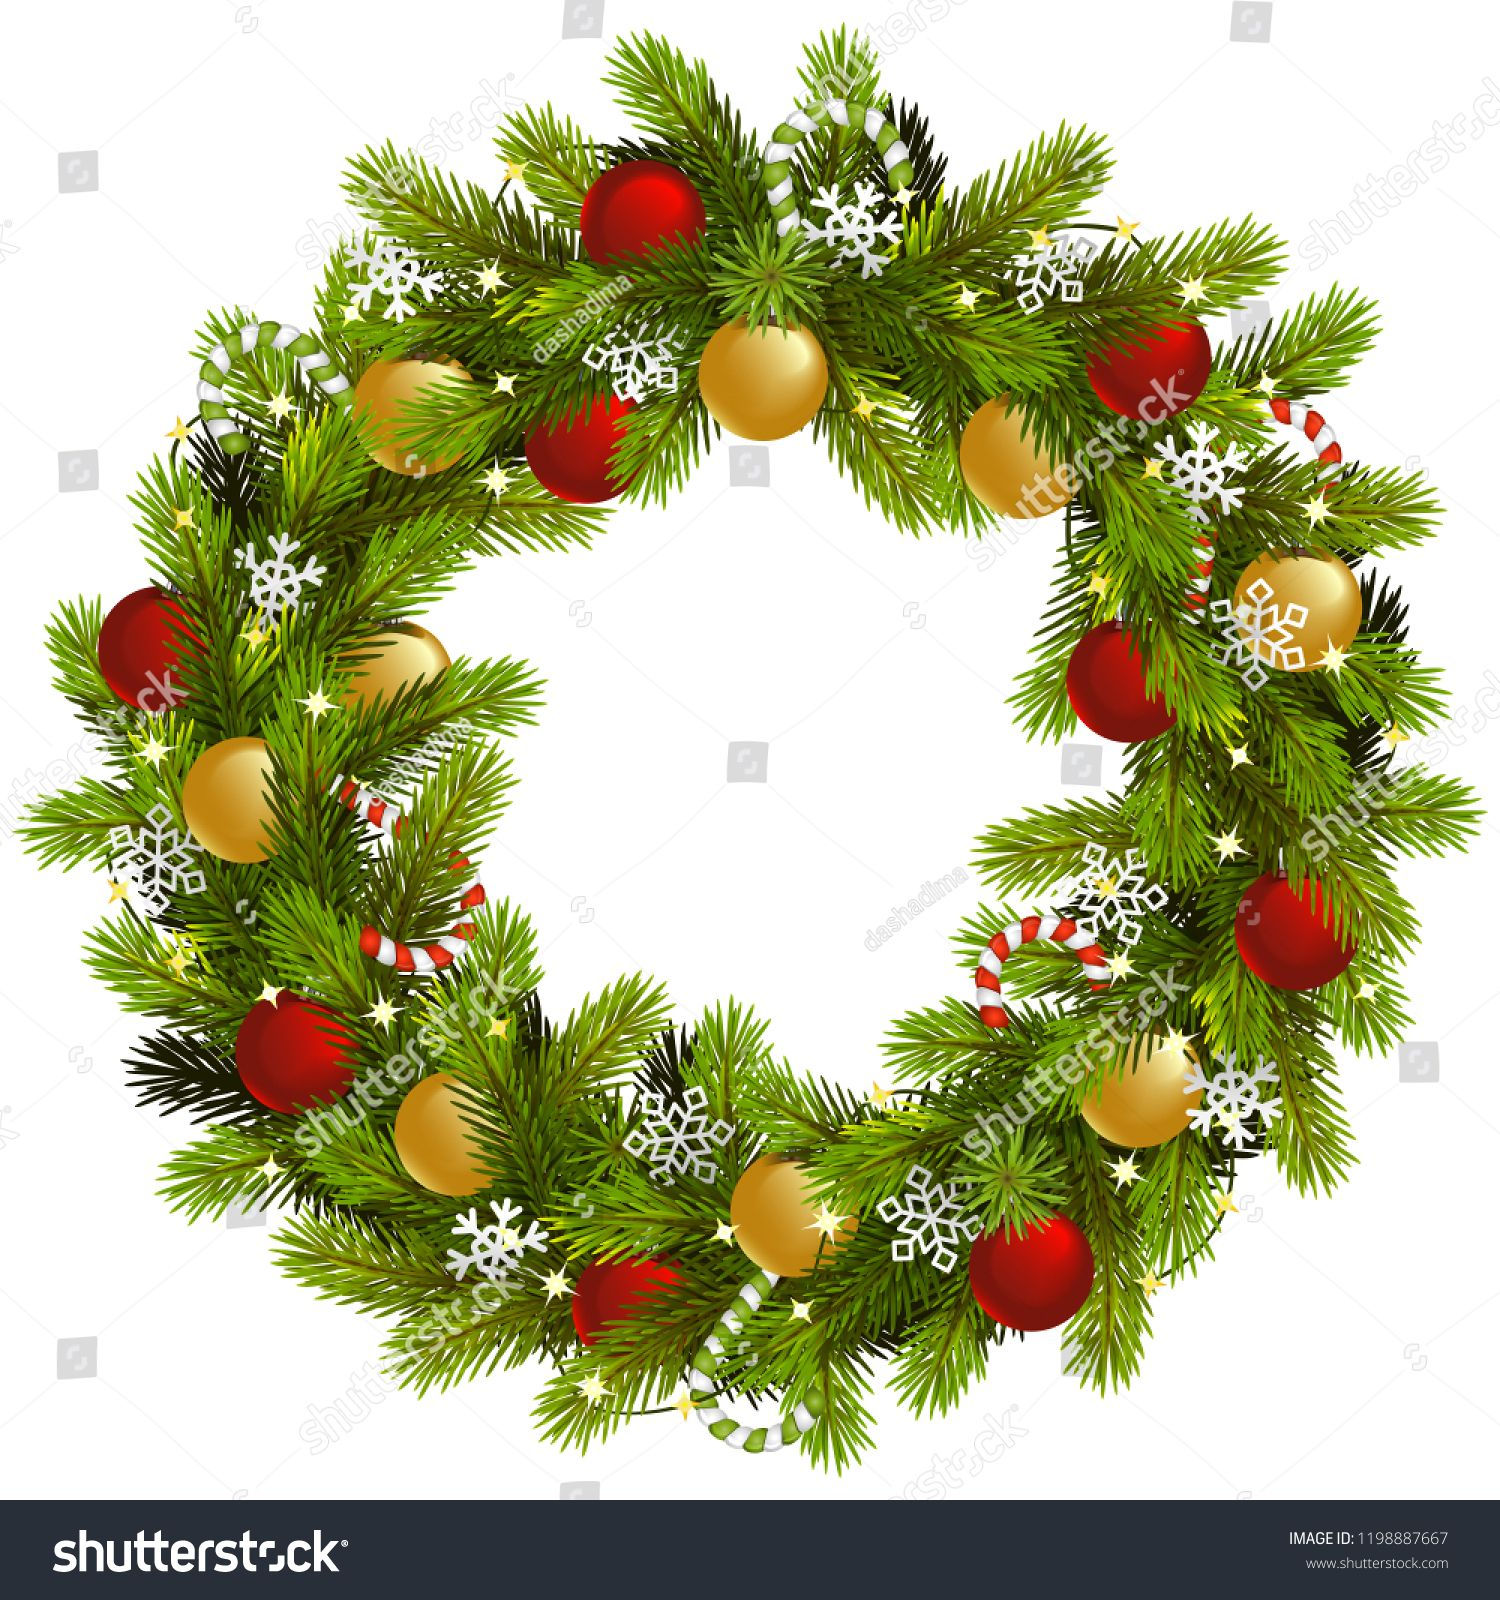 Vector Christmas Fir Wreath With Garland Isolated On White Background Fir Wreath Vector Christmas Christmas Vectors Christmas Tree With Gifts Gift Vector